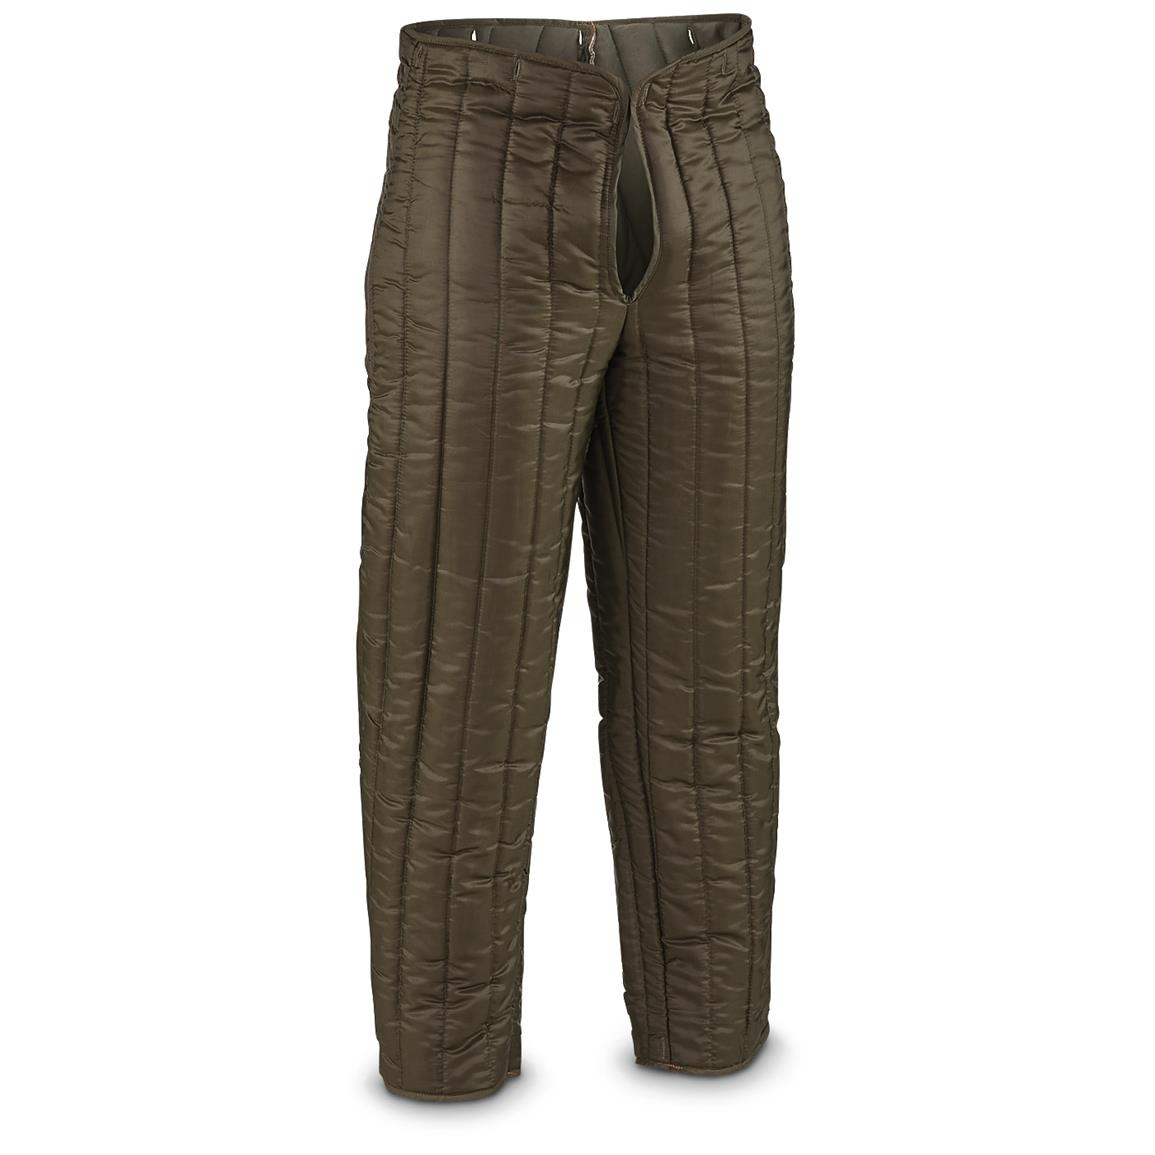 4 New Croation Military Surplus Pant Liners